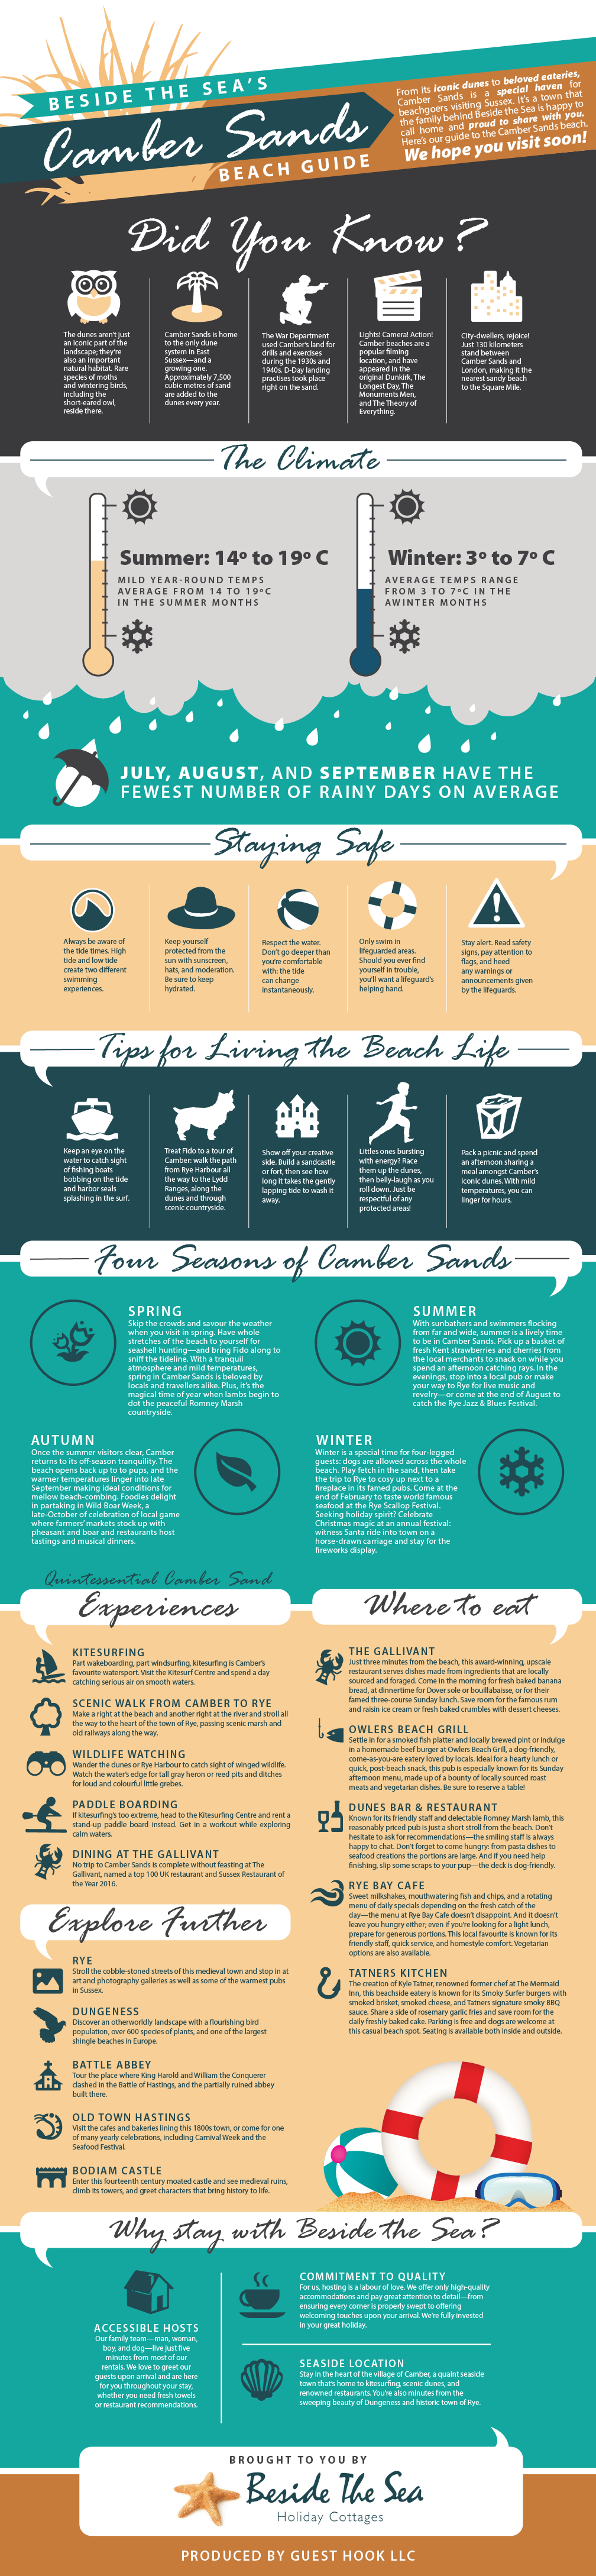 Camber Sands Beach Guide Infographic